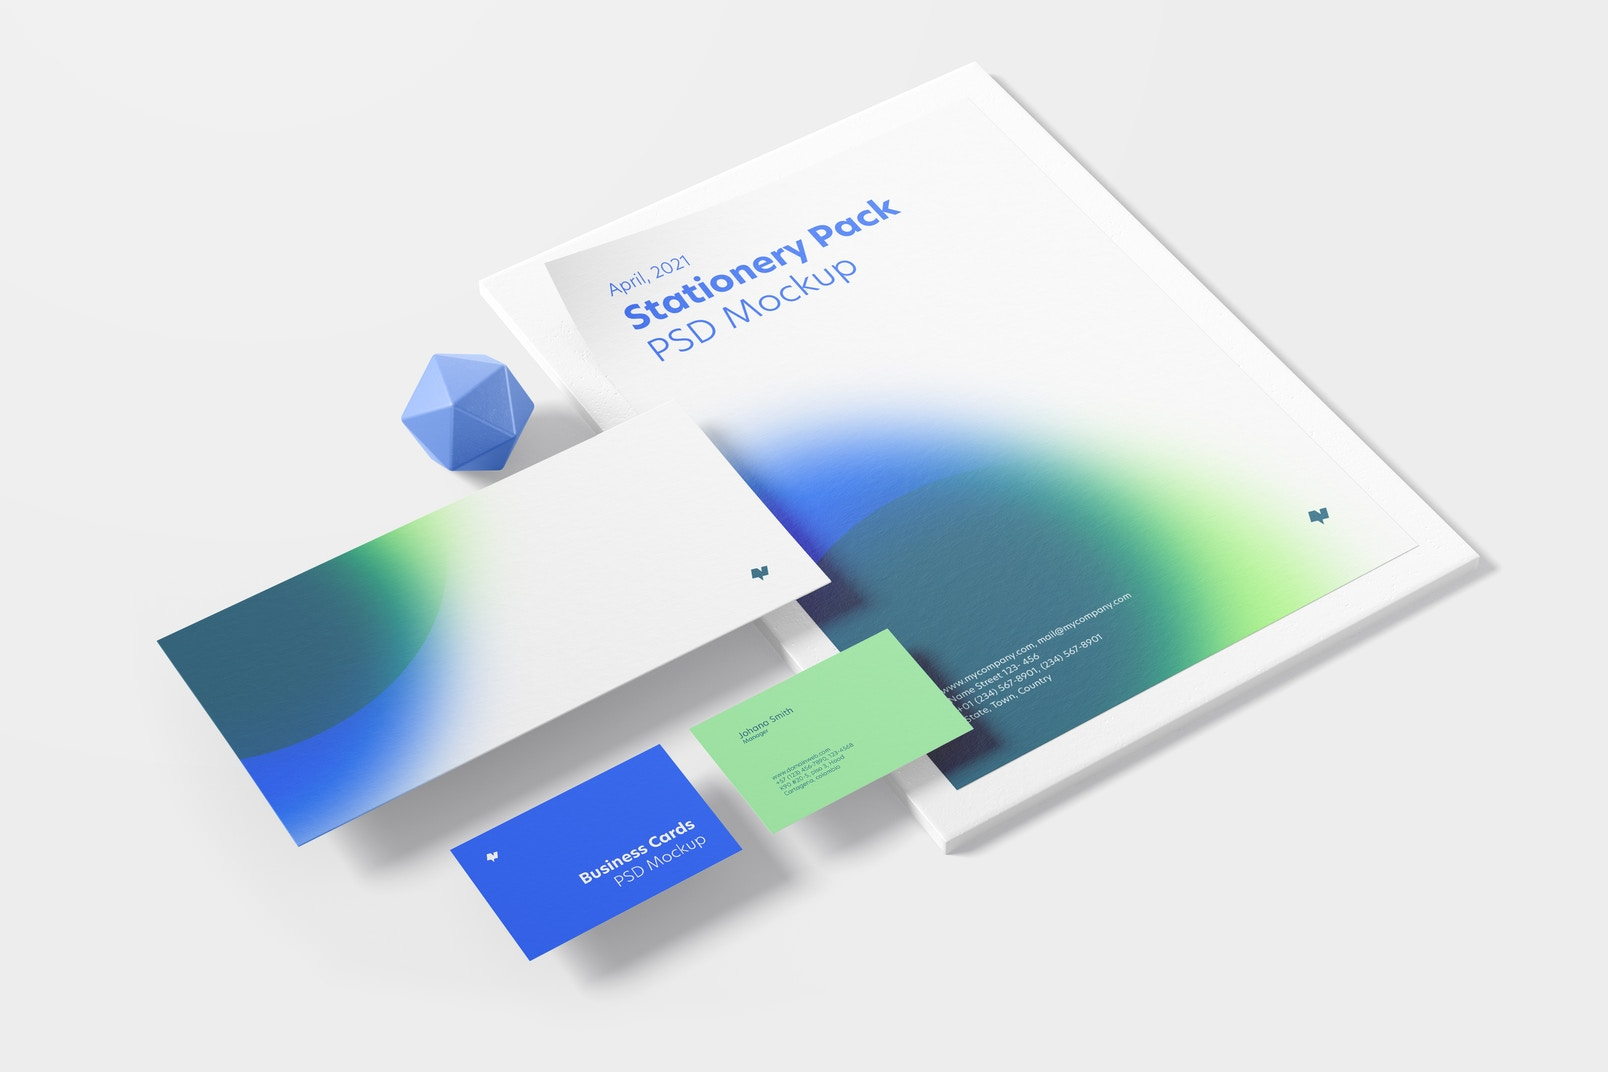 Stationery Scene Mockup, Perspective View 03